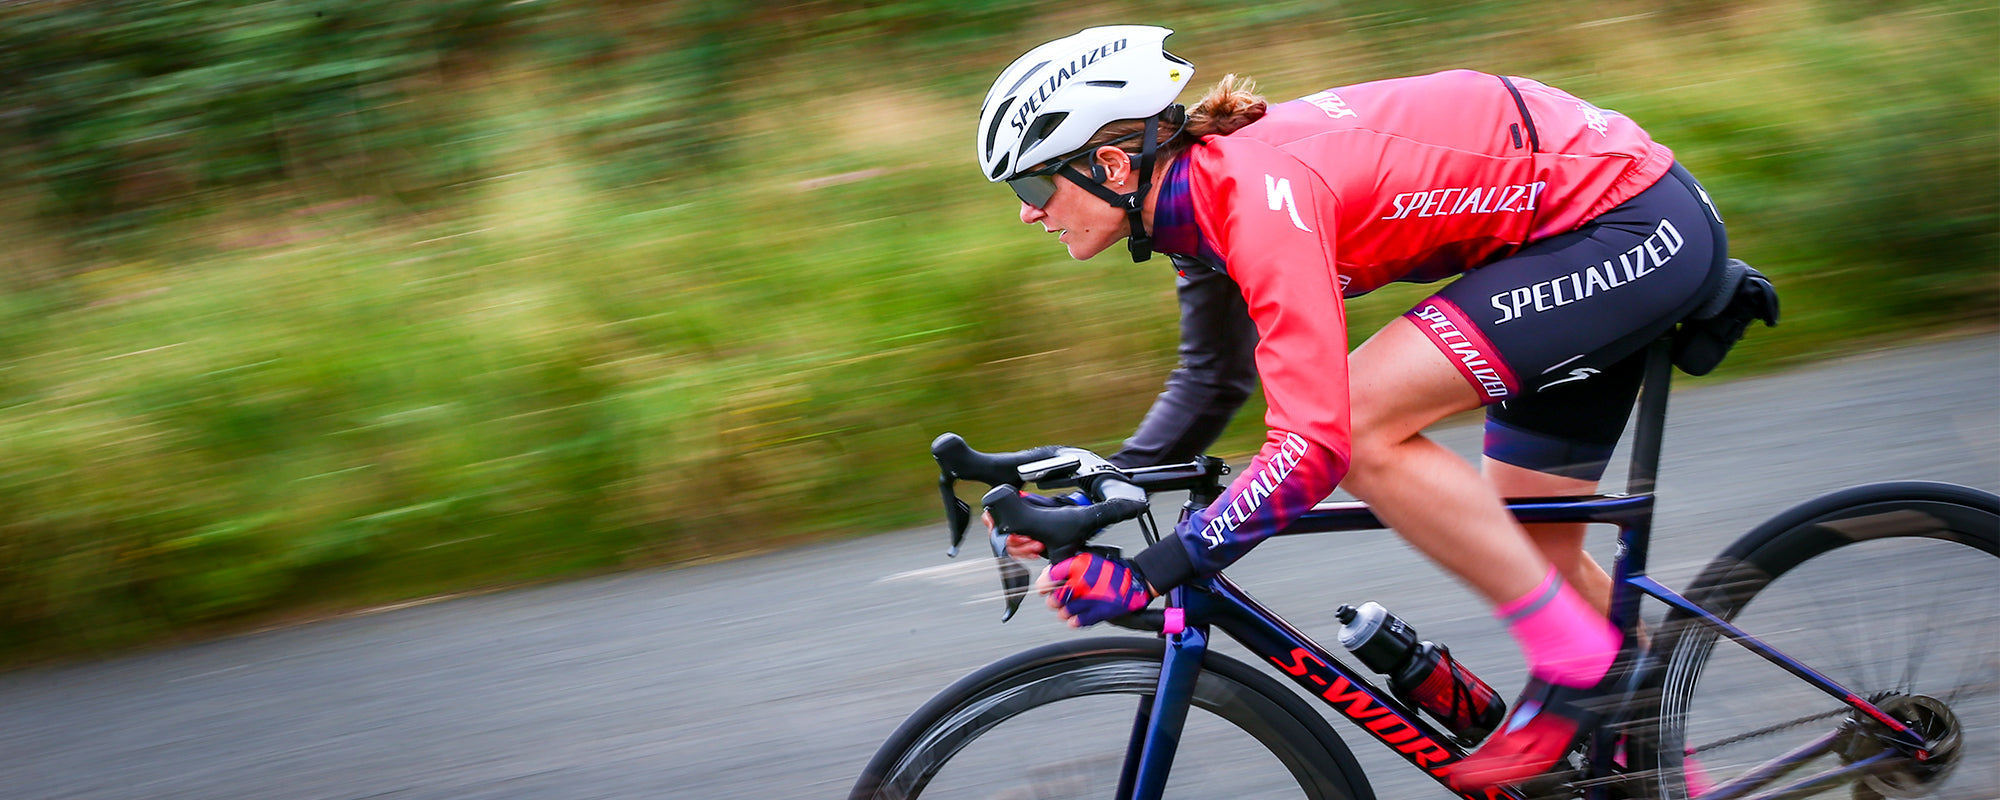 Professional Triathlete Katie Z. Shares Her Top Cycling Tips for Beginners